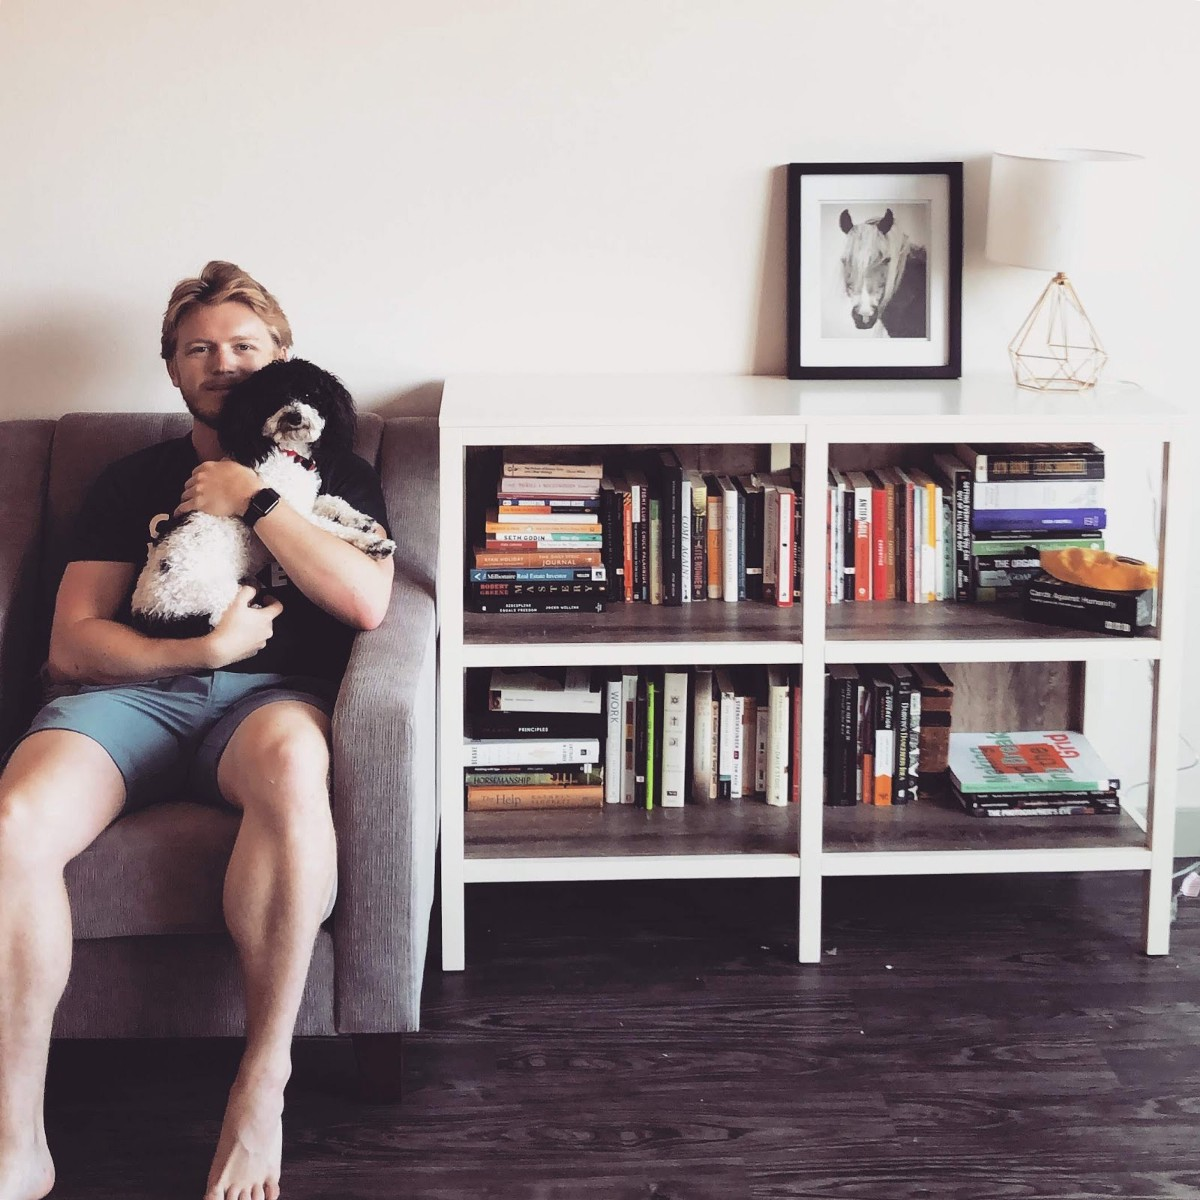 How This 26-Year-Old Writer Generates $1.94 Million a Year